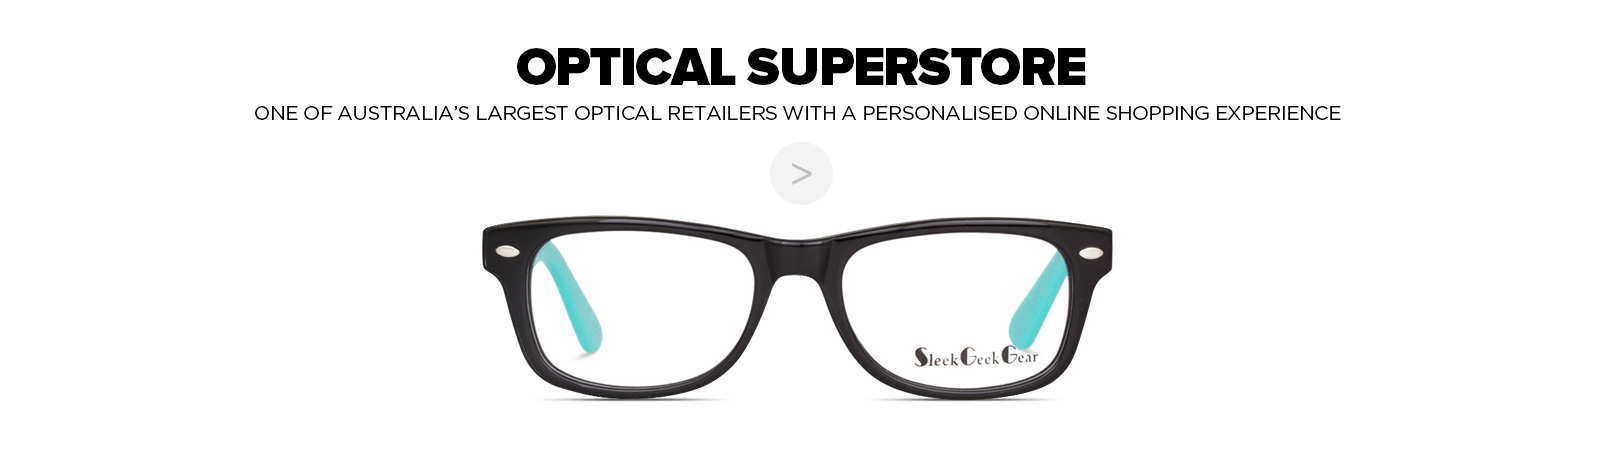 Optical Superstore e-commerce website built by NOW Solutions Digital Agency